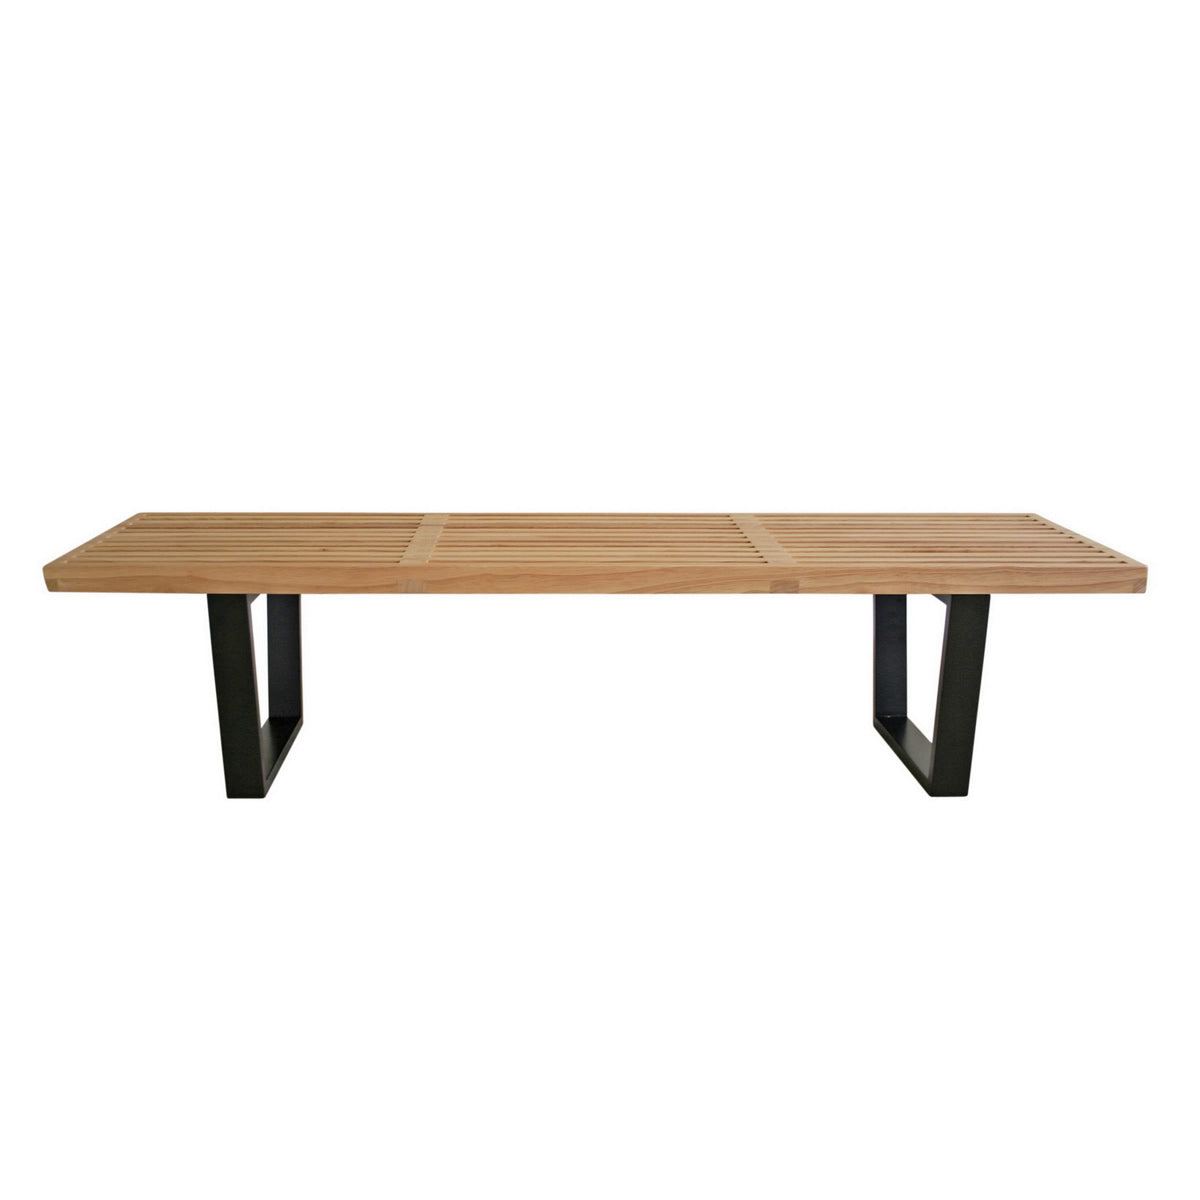 Baxton Studio Nelson Style Wooden Bench-Natural Baxton Studio-benches-Minimal And Modern - 1